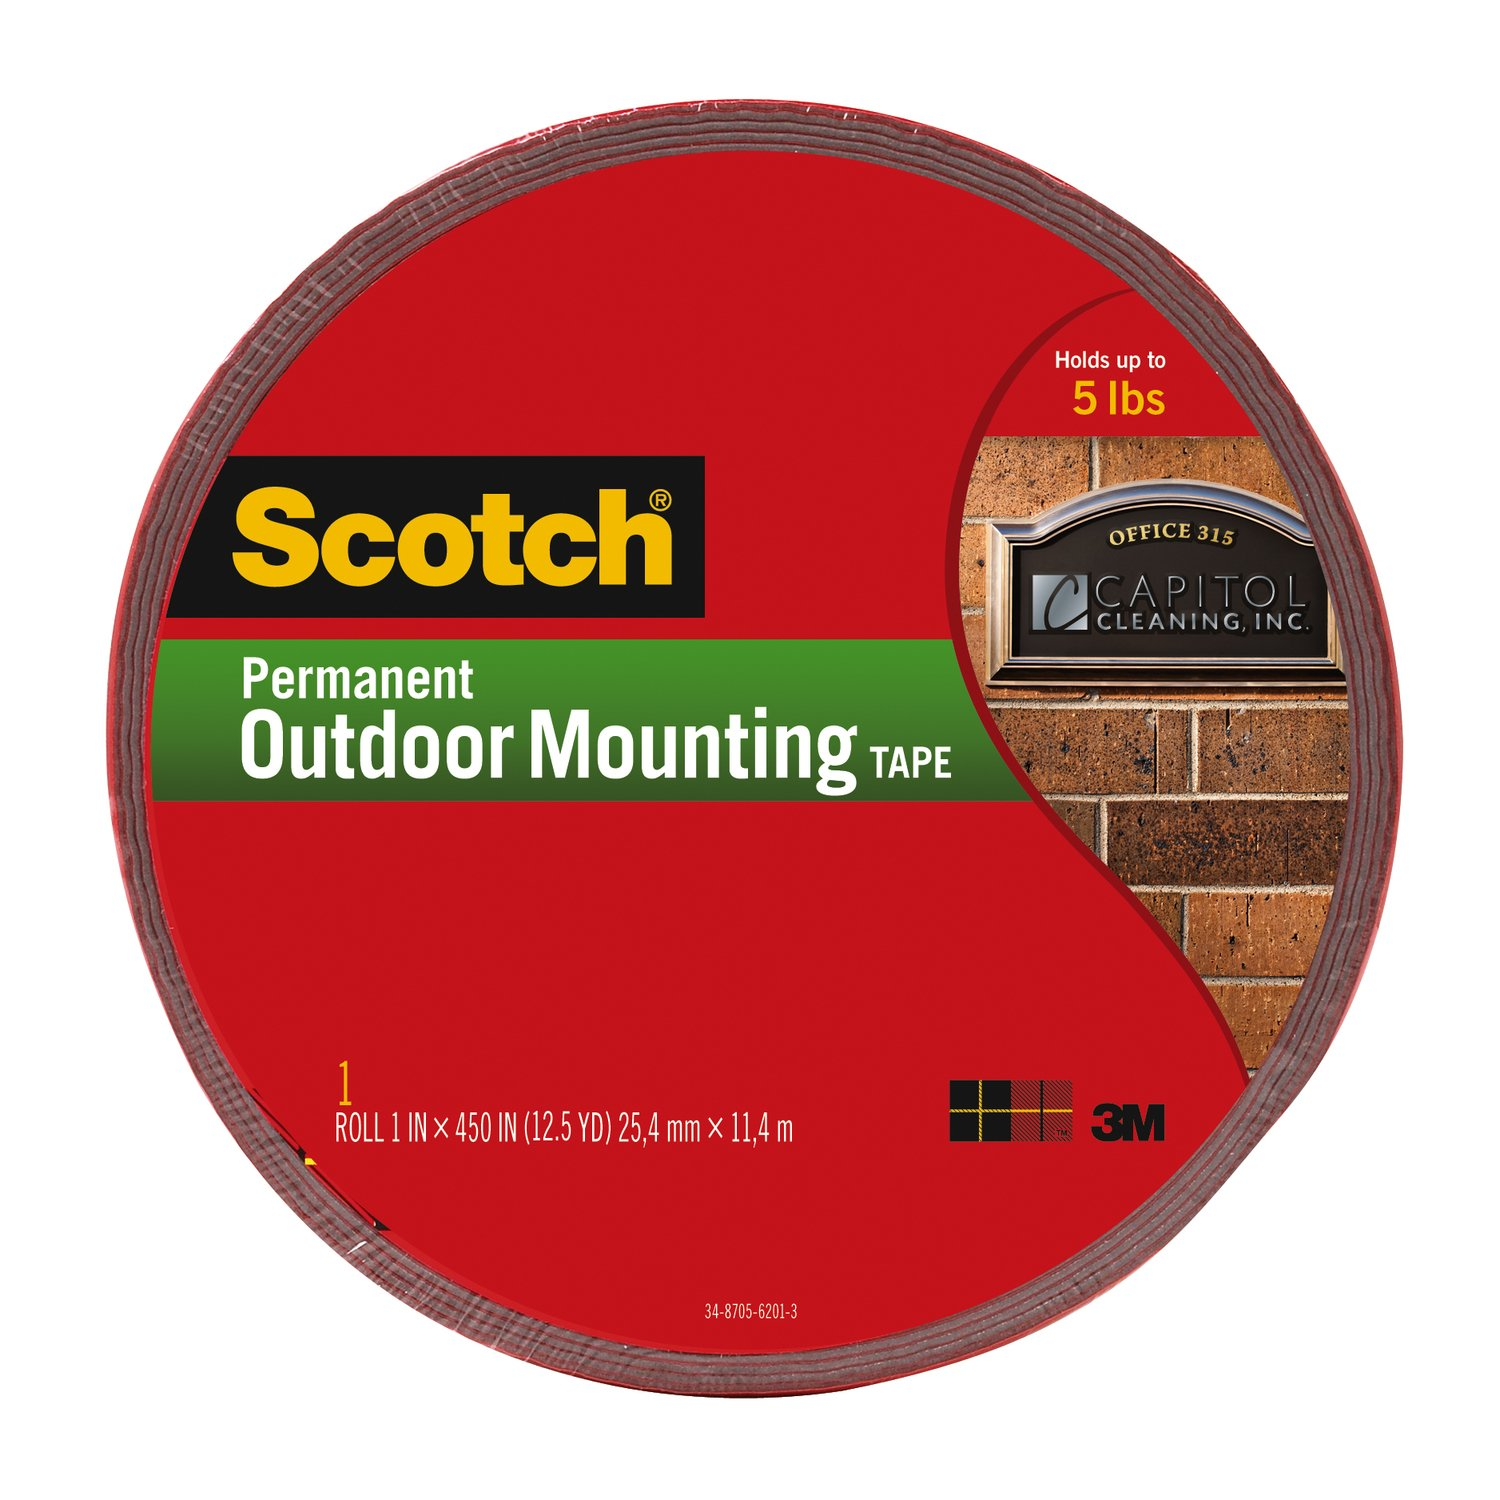 Amazoncom Scotch Permanent Outdoor Mounting Tape 1 Inch x 450